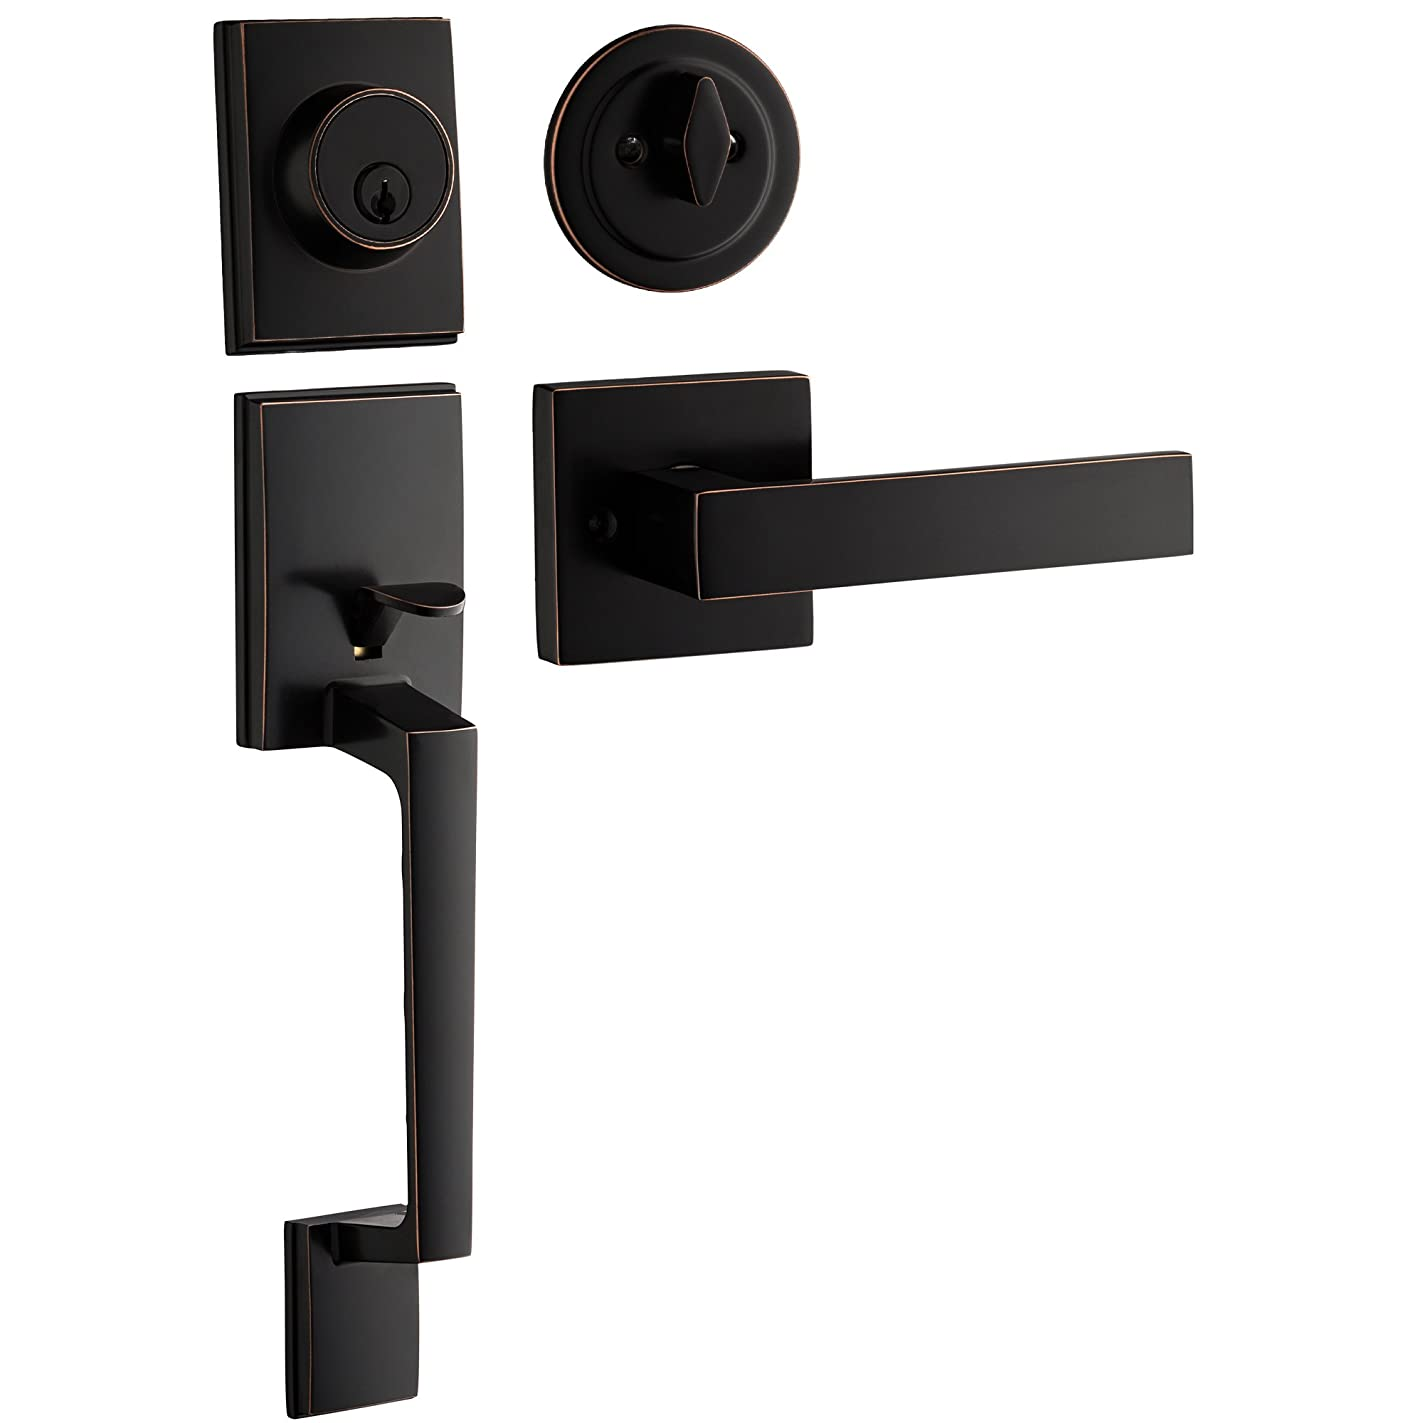 Berlin Modisch Single Cylinder HandleSet with Lever Door Handle (for Entrance and Front Door) Reversible for Right and Left Handed and a Single Cylinder deadbolt Handle Set Oil Rubbed Bronze Finish